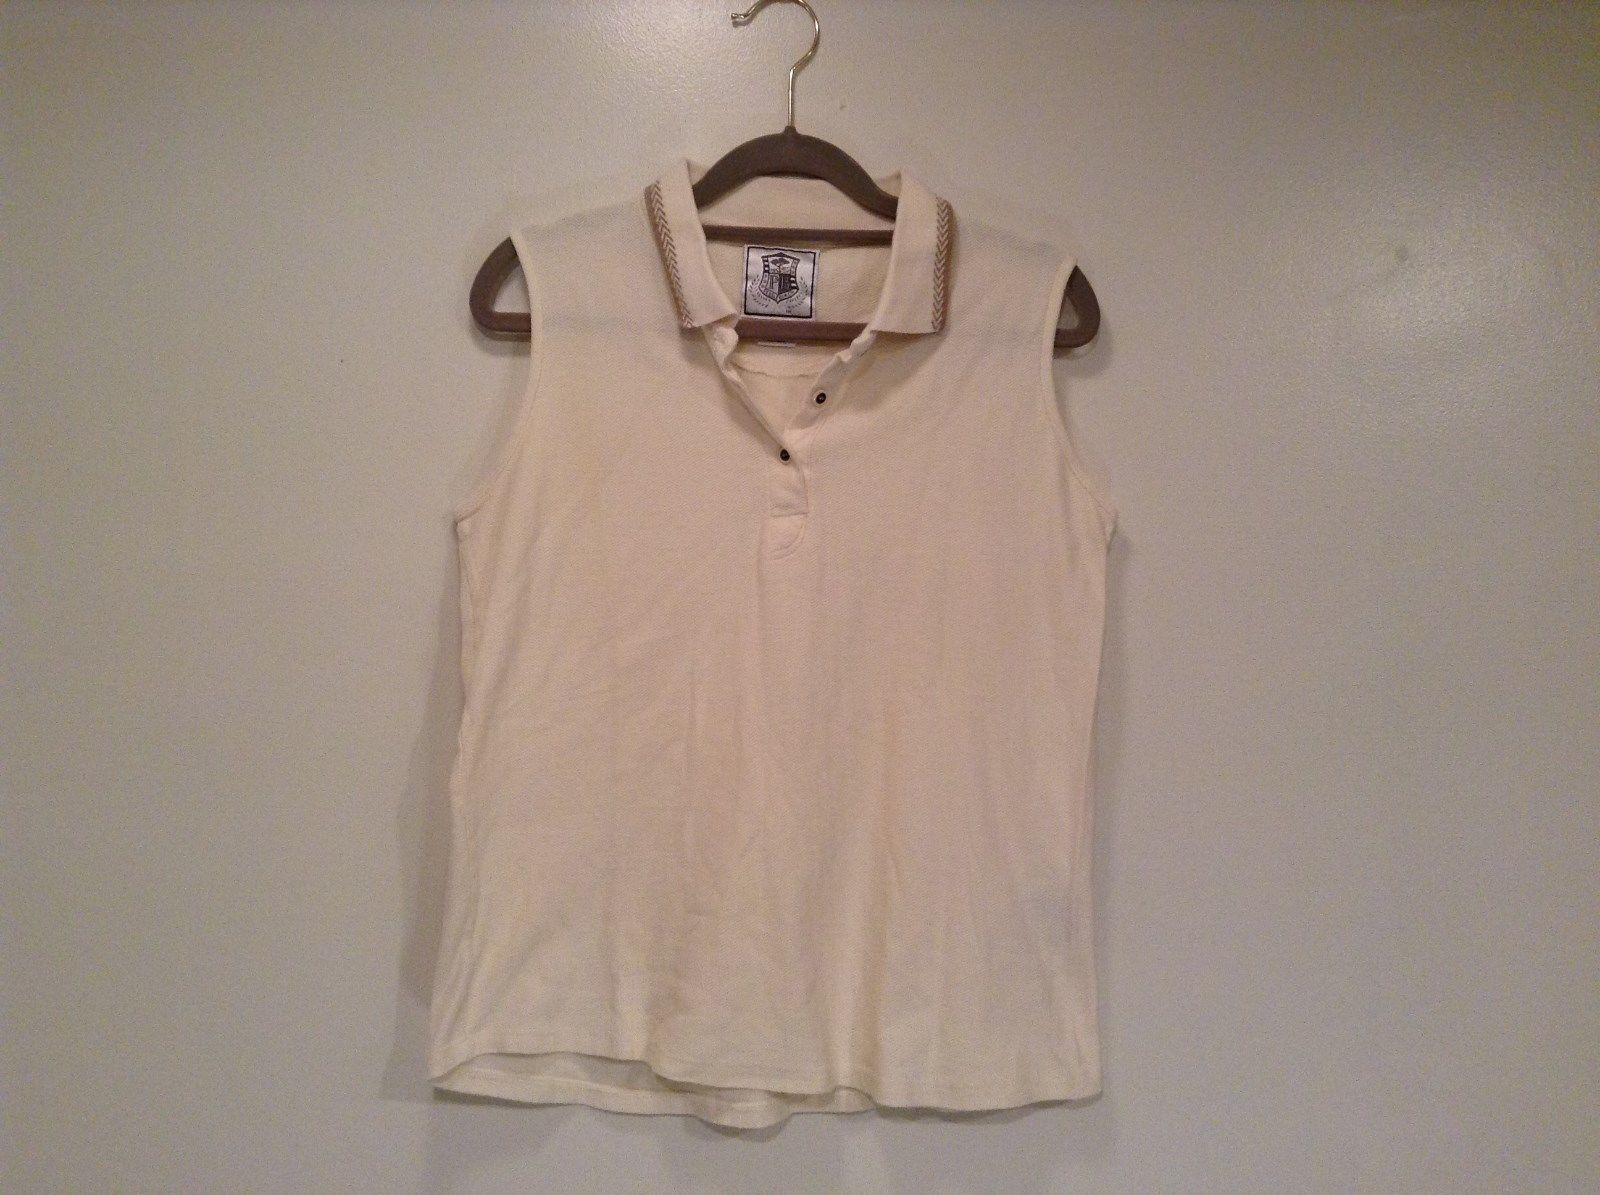 Pebble Beach Size S Natural White Cream Colored Sleeveless Shirt All Cotton